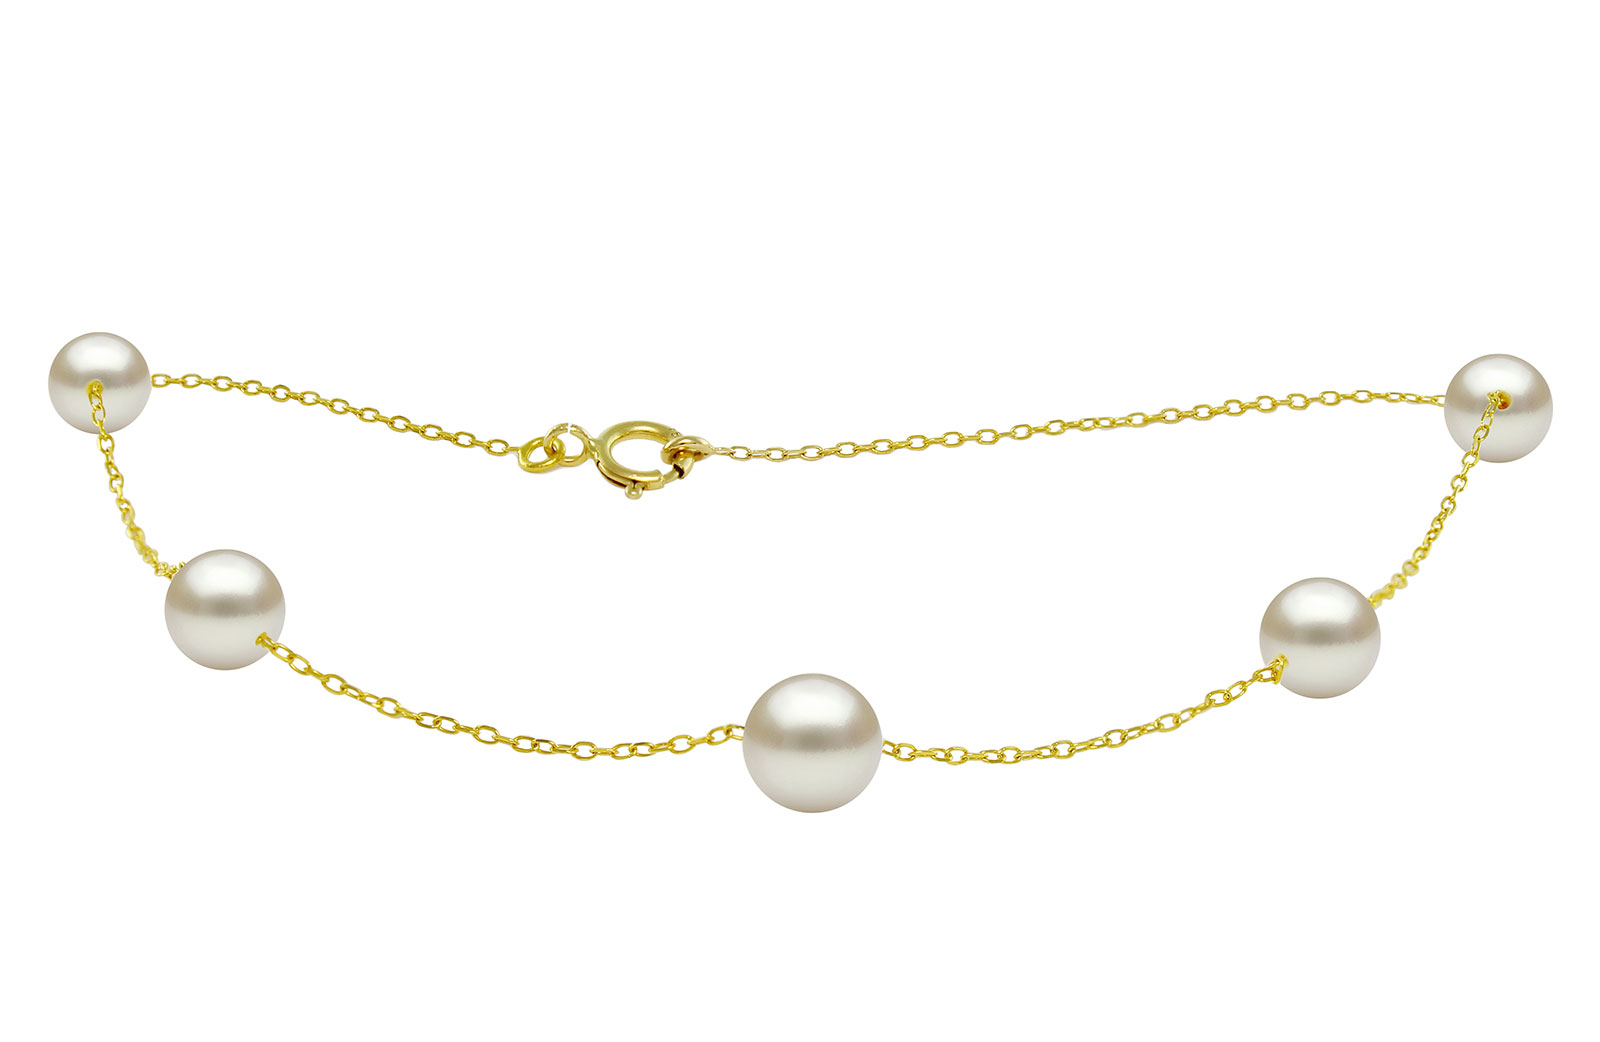 VP Jewels 18K Solid Gold 5.5-7MM Gradual  Built-in White Pearl Bracelet